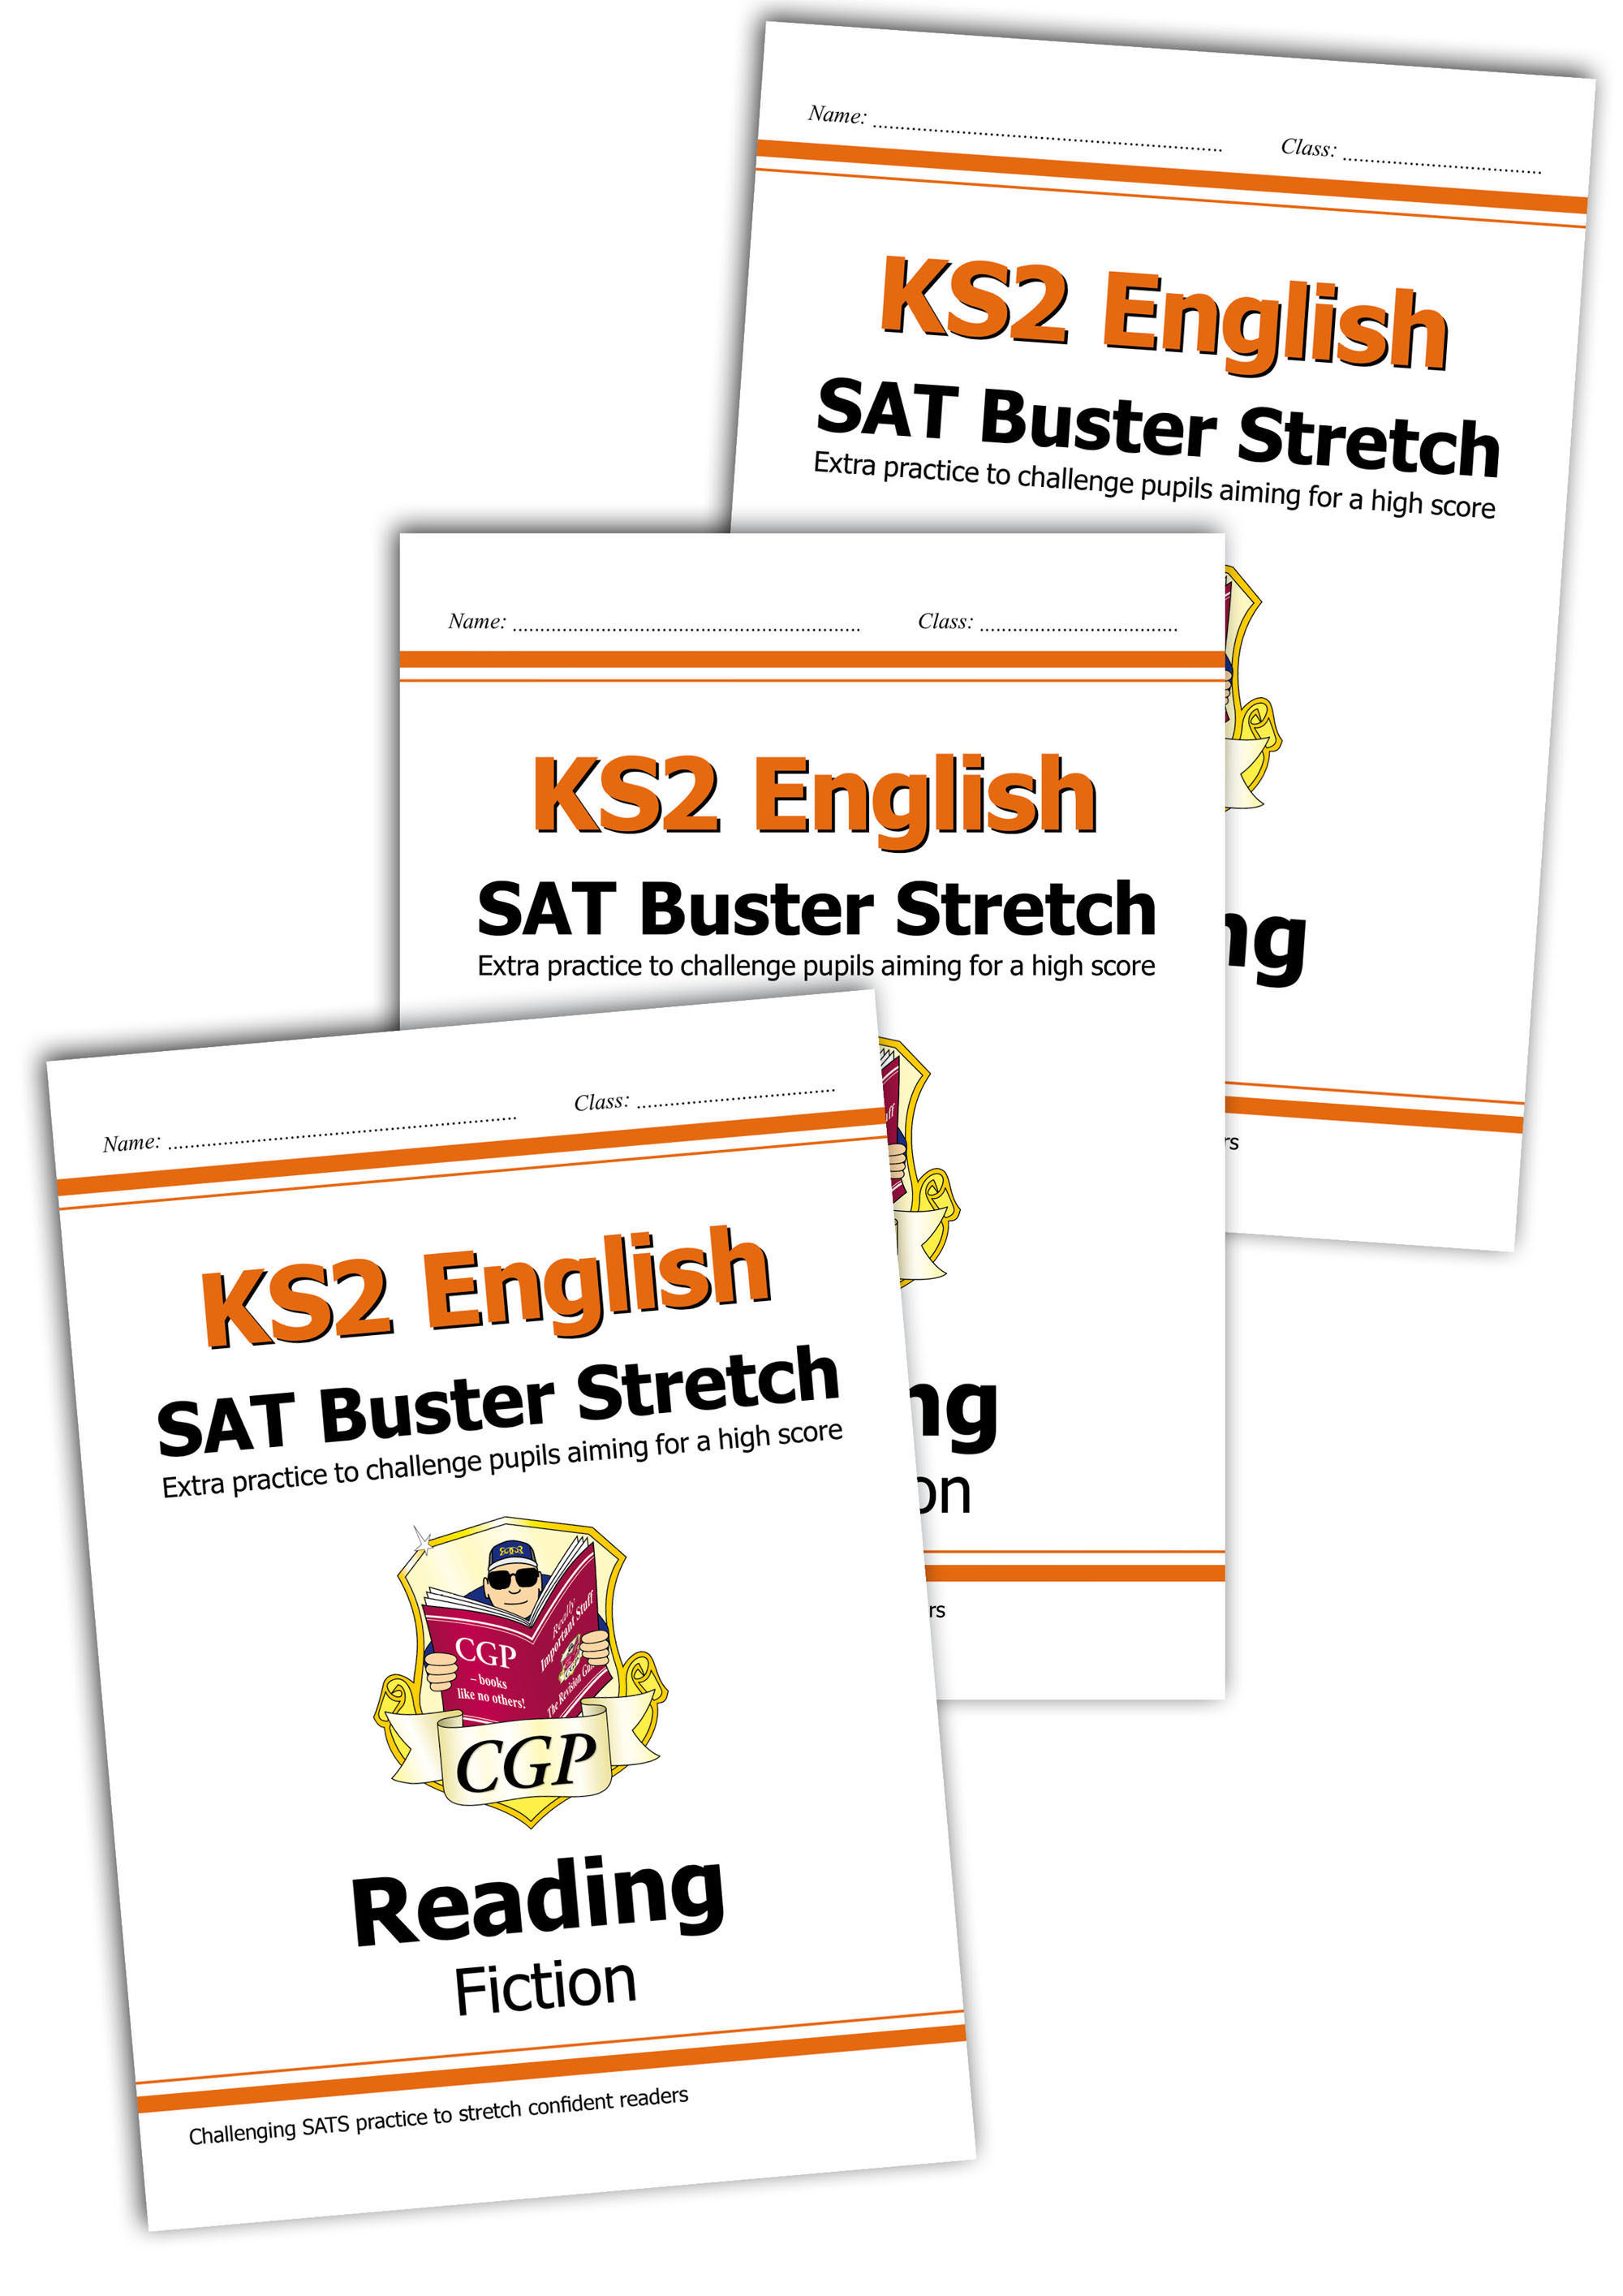 E6HRB21 - New KS2 English Reading SAT Buster Stretch Bundle - Fiction, Non-Fiction & Poetry (incl an